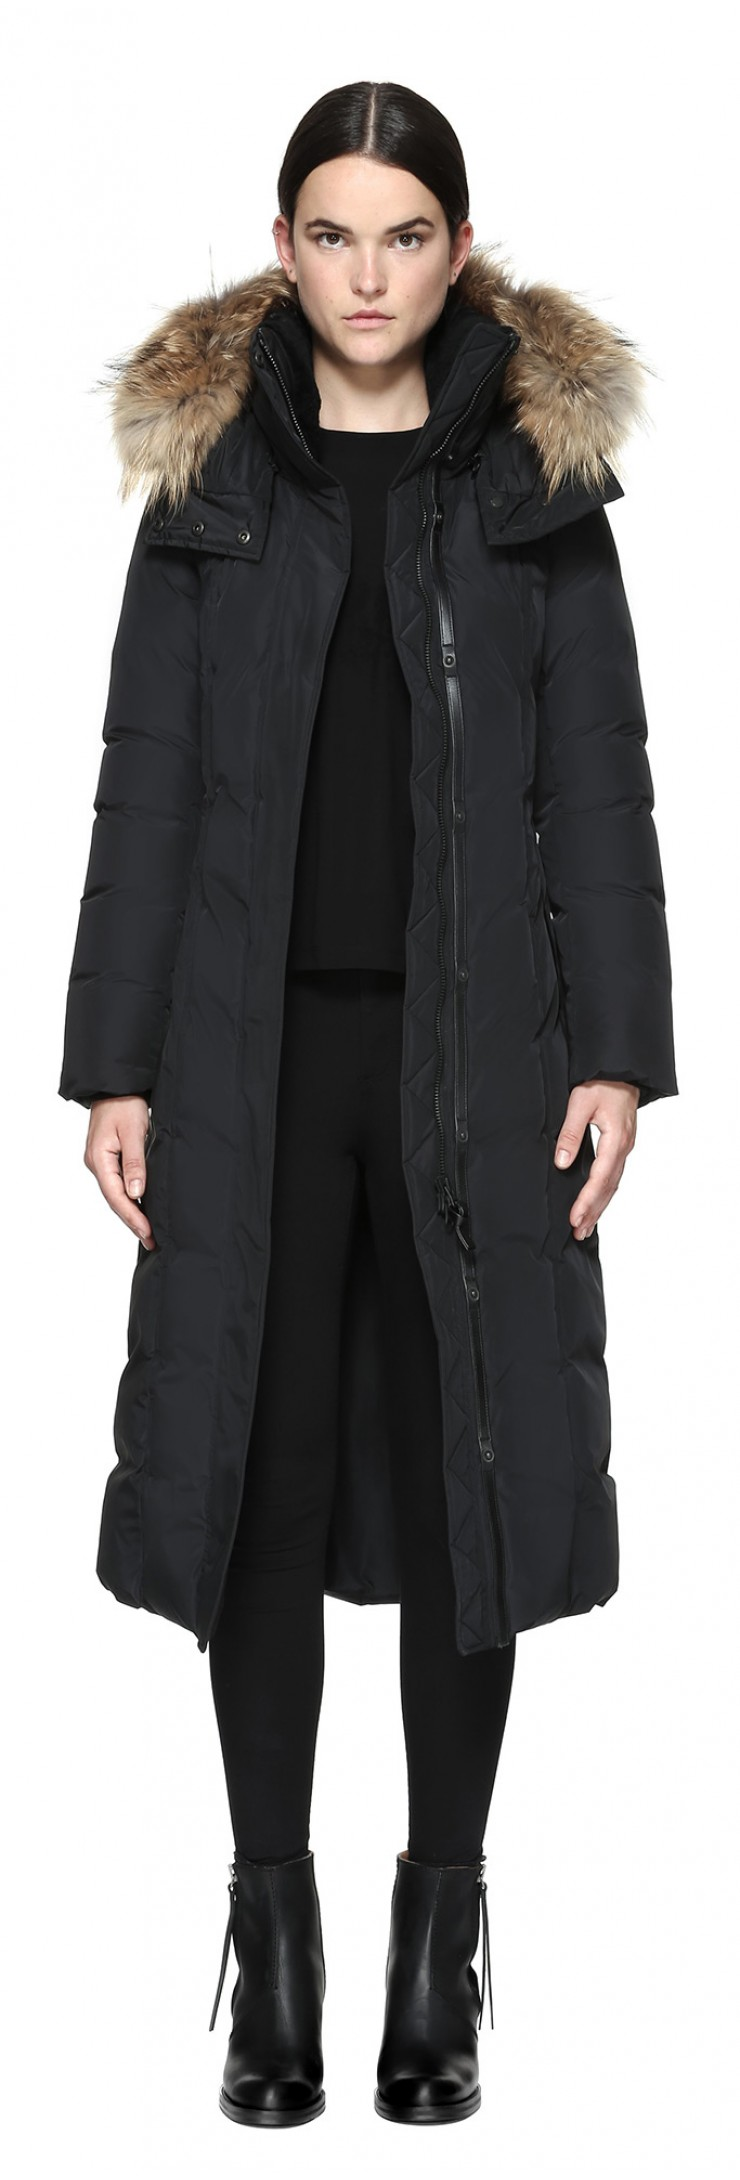 c077a679d Mackage Jada Maxi Length Winter Down Coat With Sheepskin - Womens